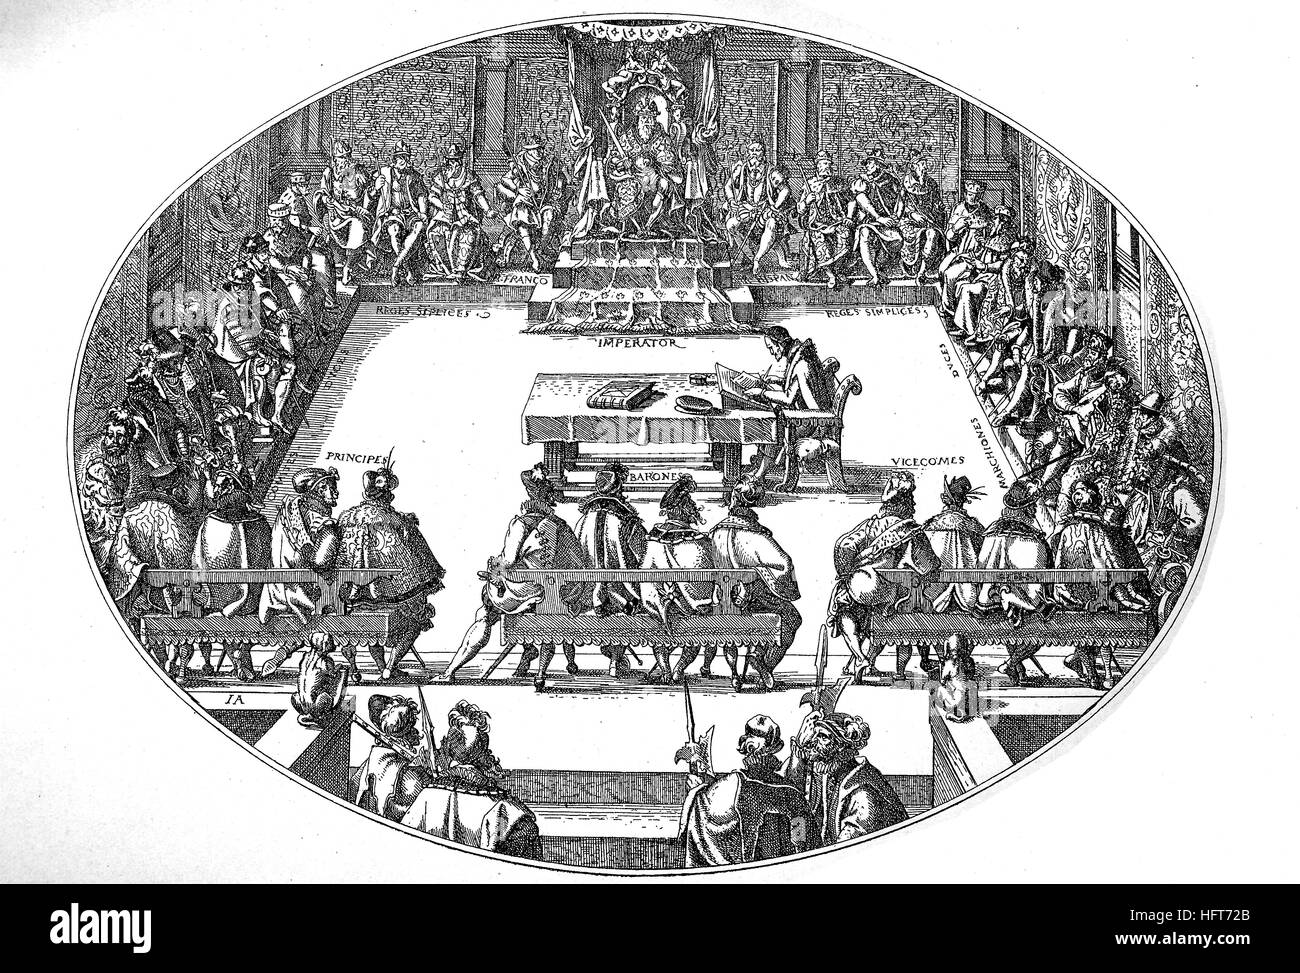 Assemblies under the presidency of the emperor, with kings, dukes, margraves, princes, counts, and barons, as well - Stock Image